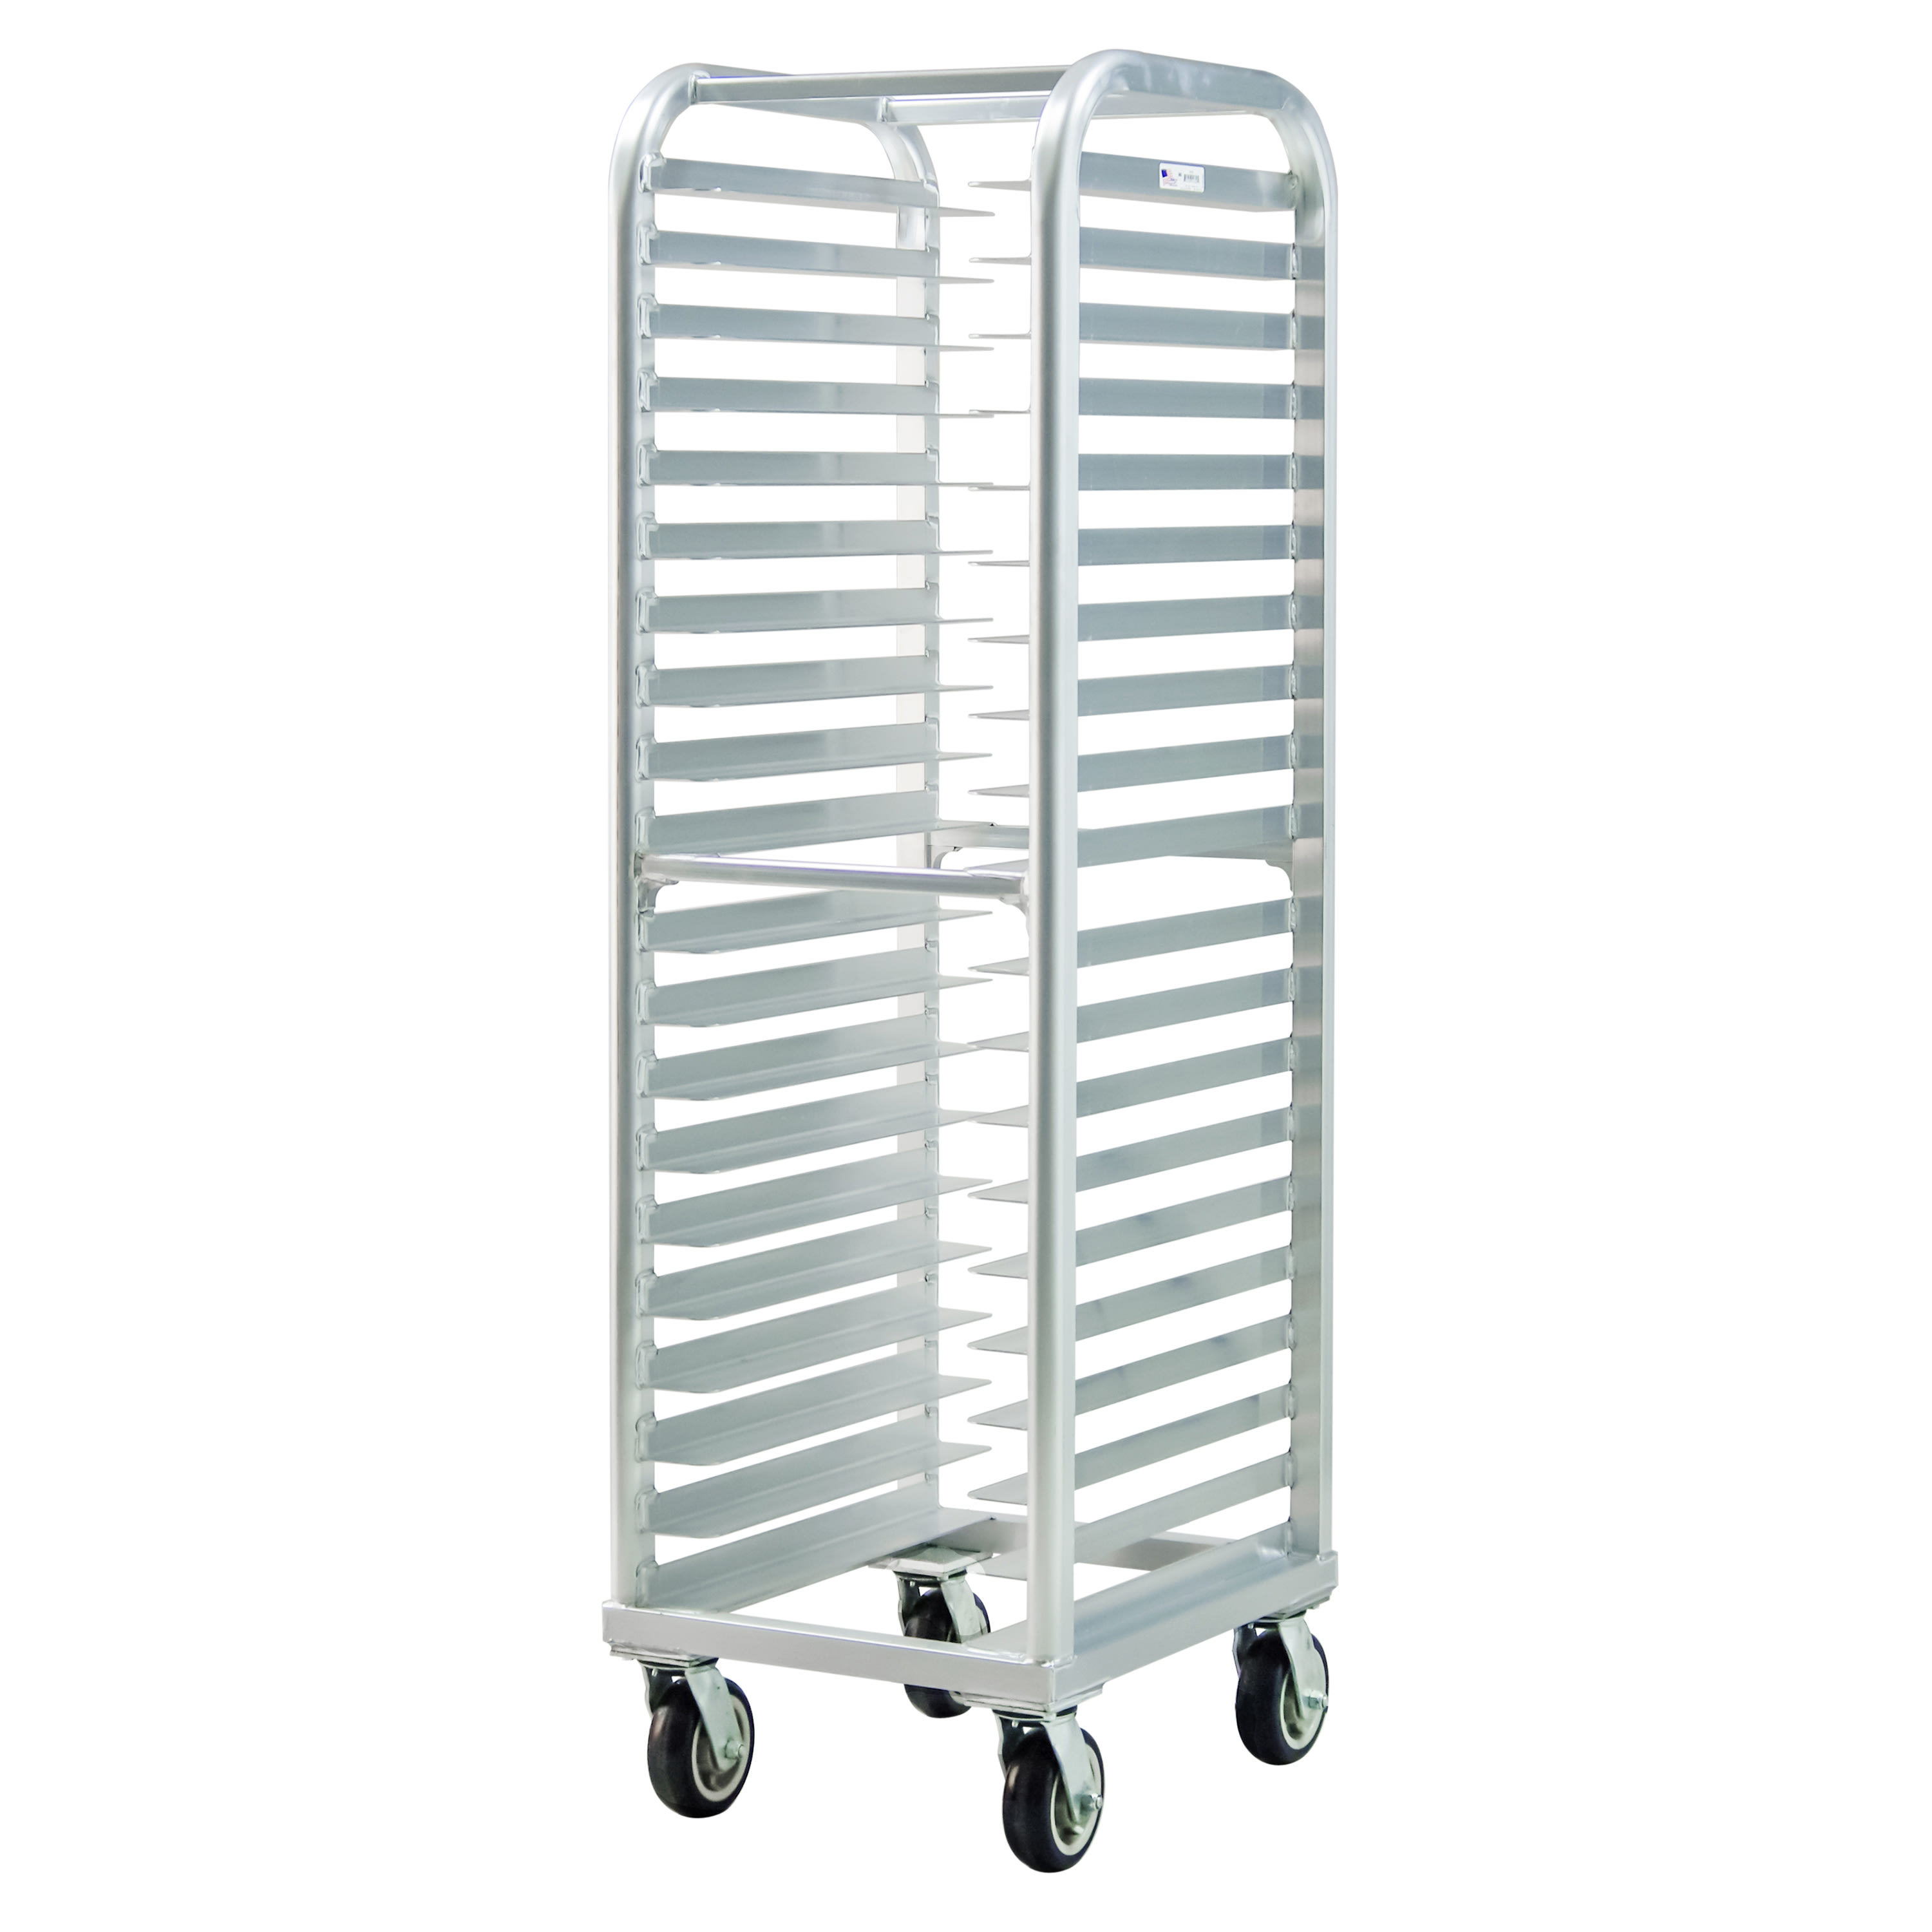 New Age 4339 21.5W 20-Bun Pan Rack w/ 3 Bottom Load Slides